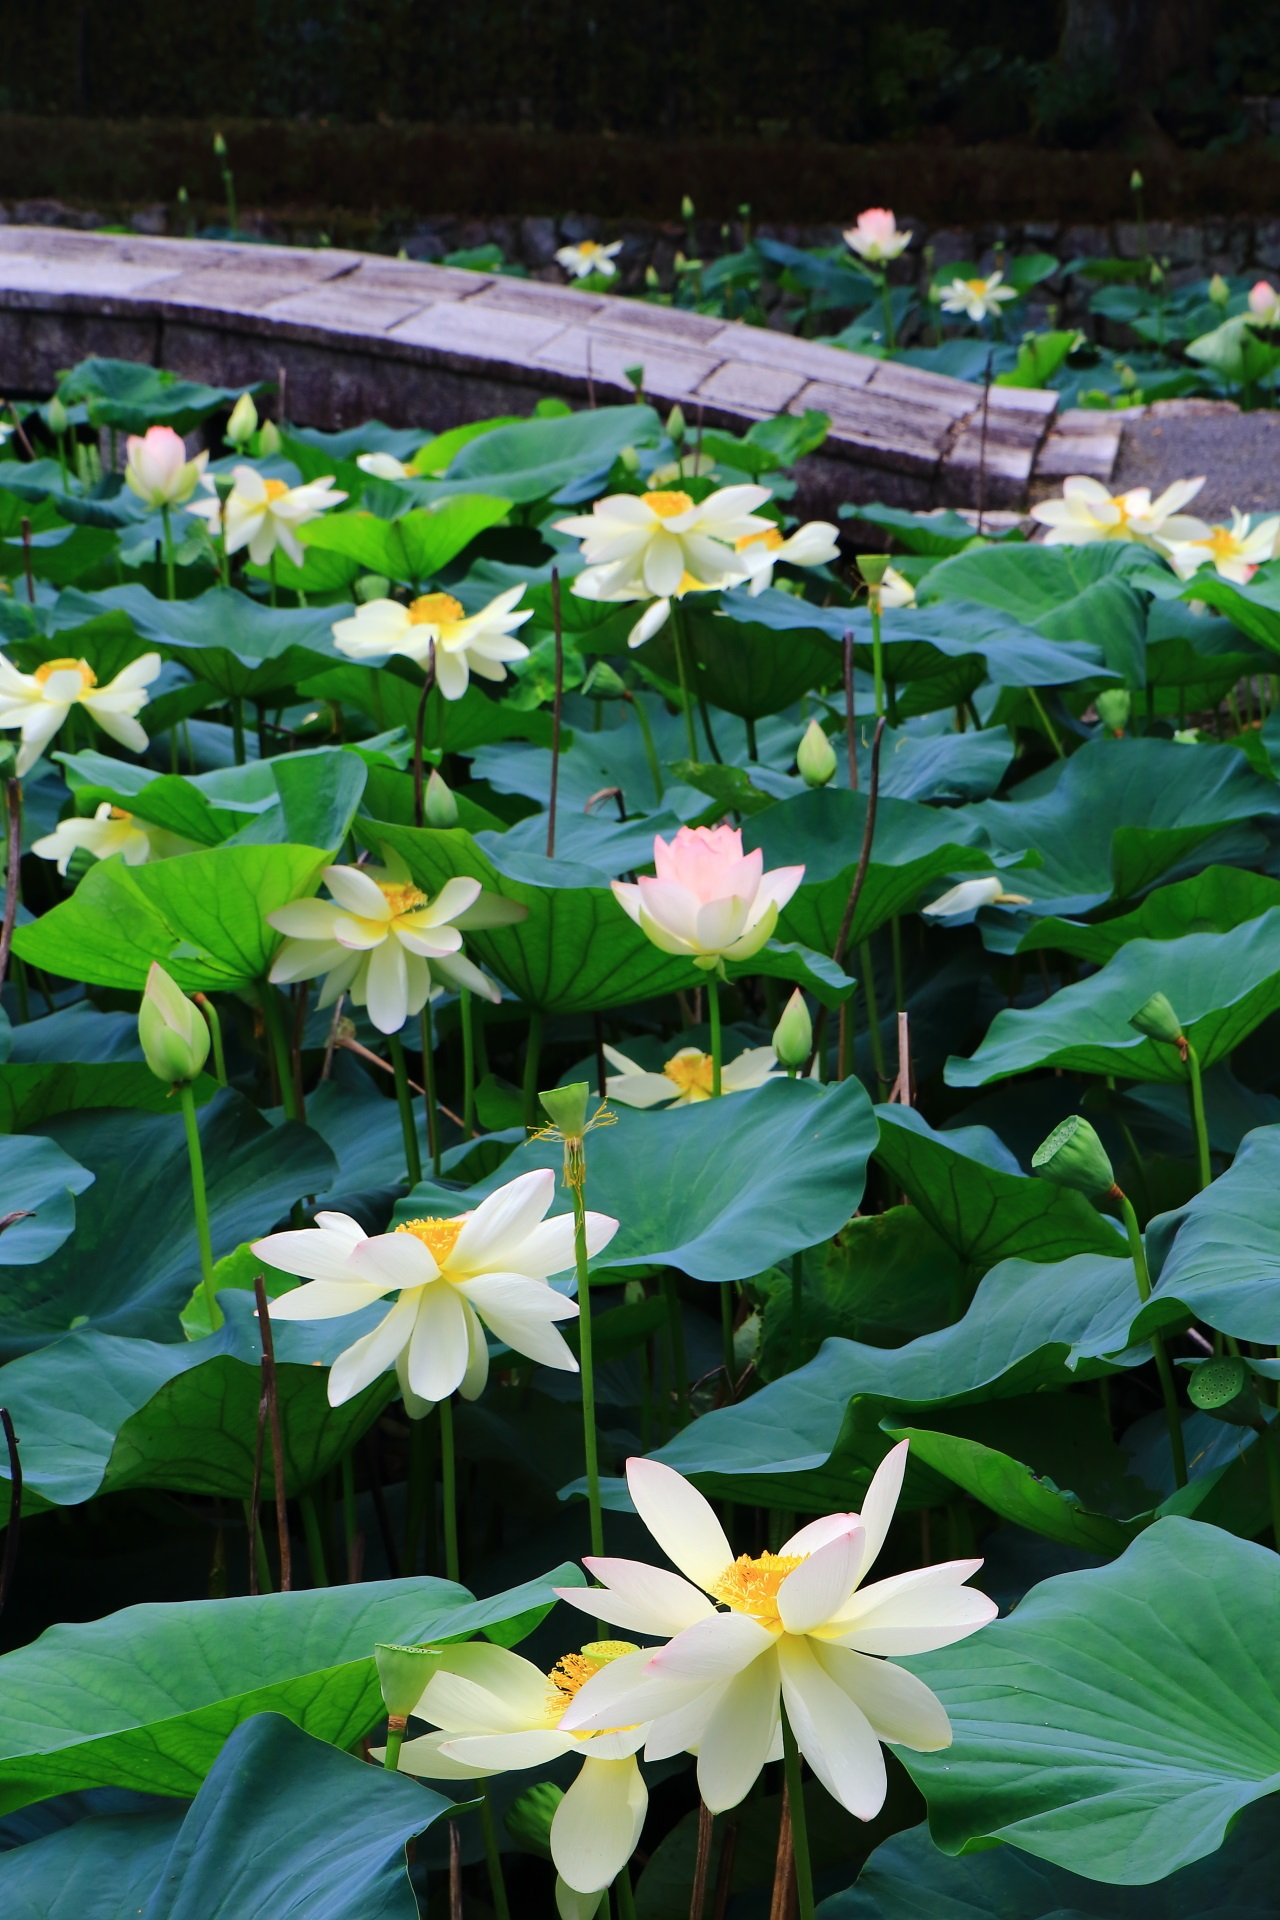 Lotus flowers blooming in Tofukuji-Tempel in Kyoto,Japan